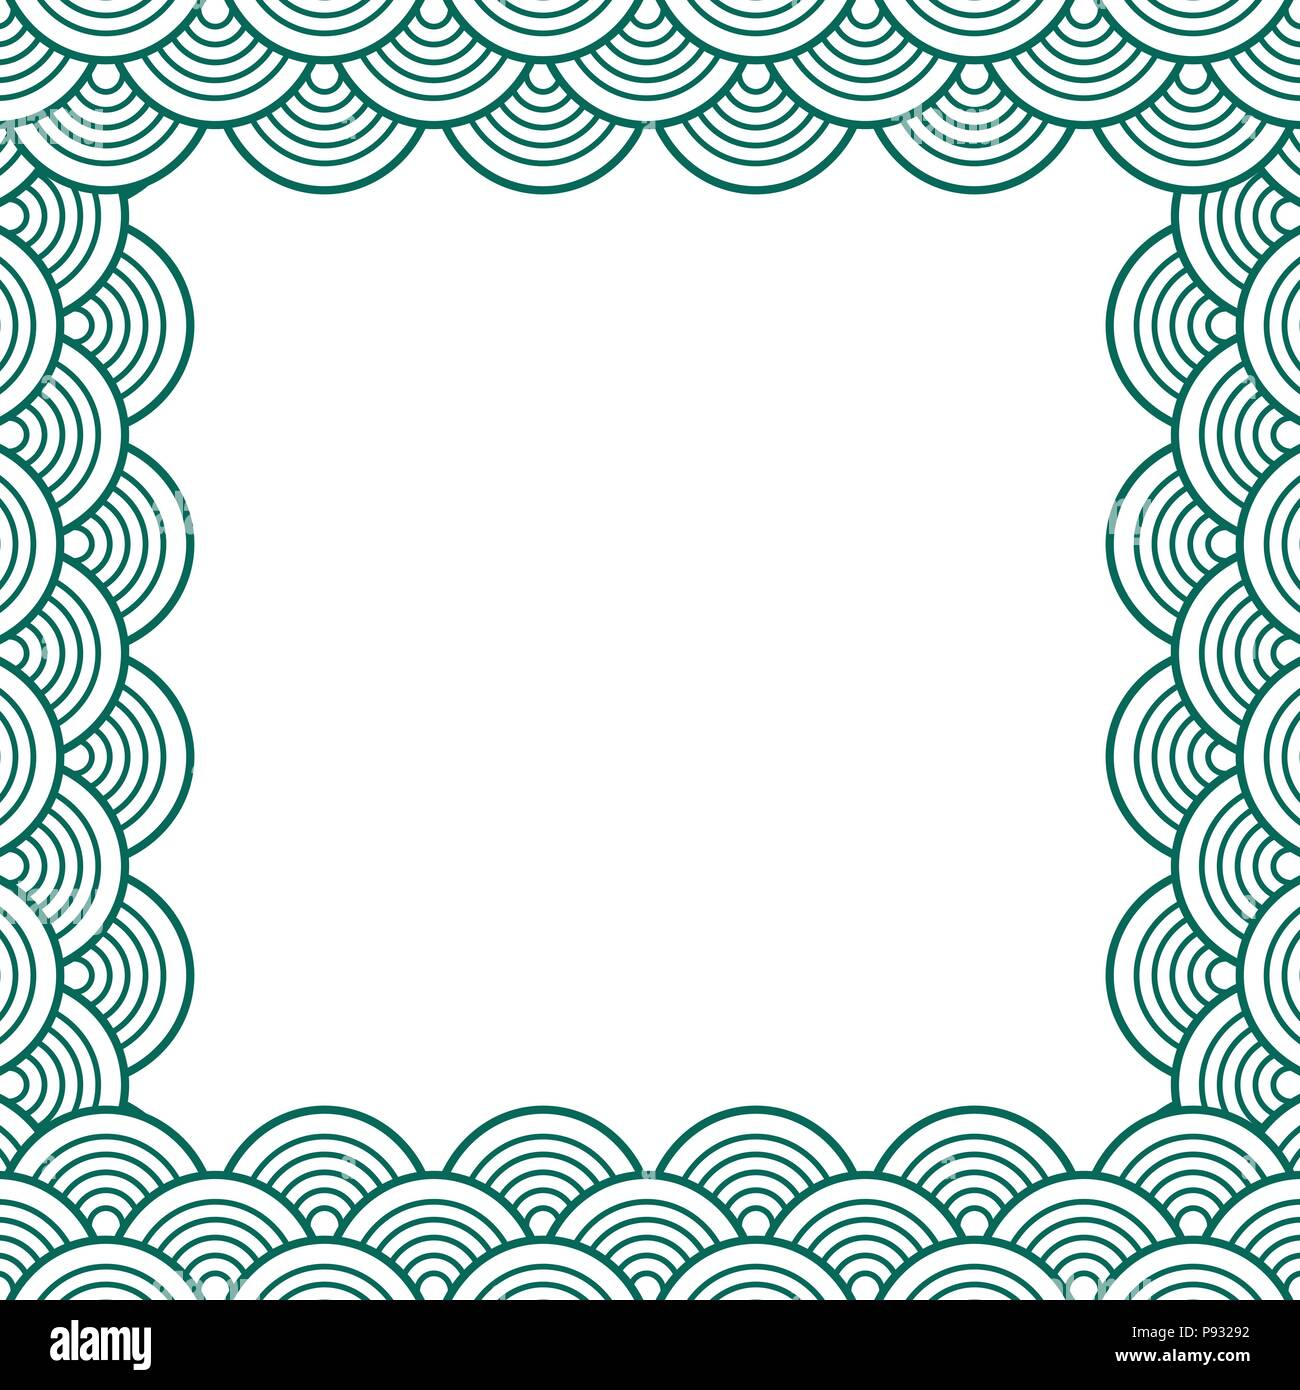 White Green Traditional Wave Japanese Chinese Seigaiha Border